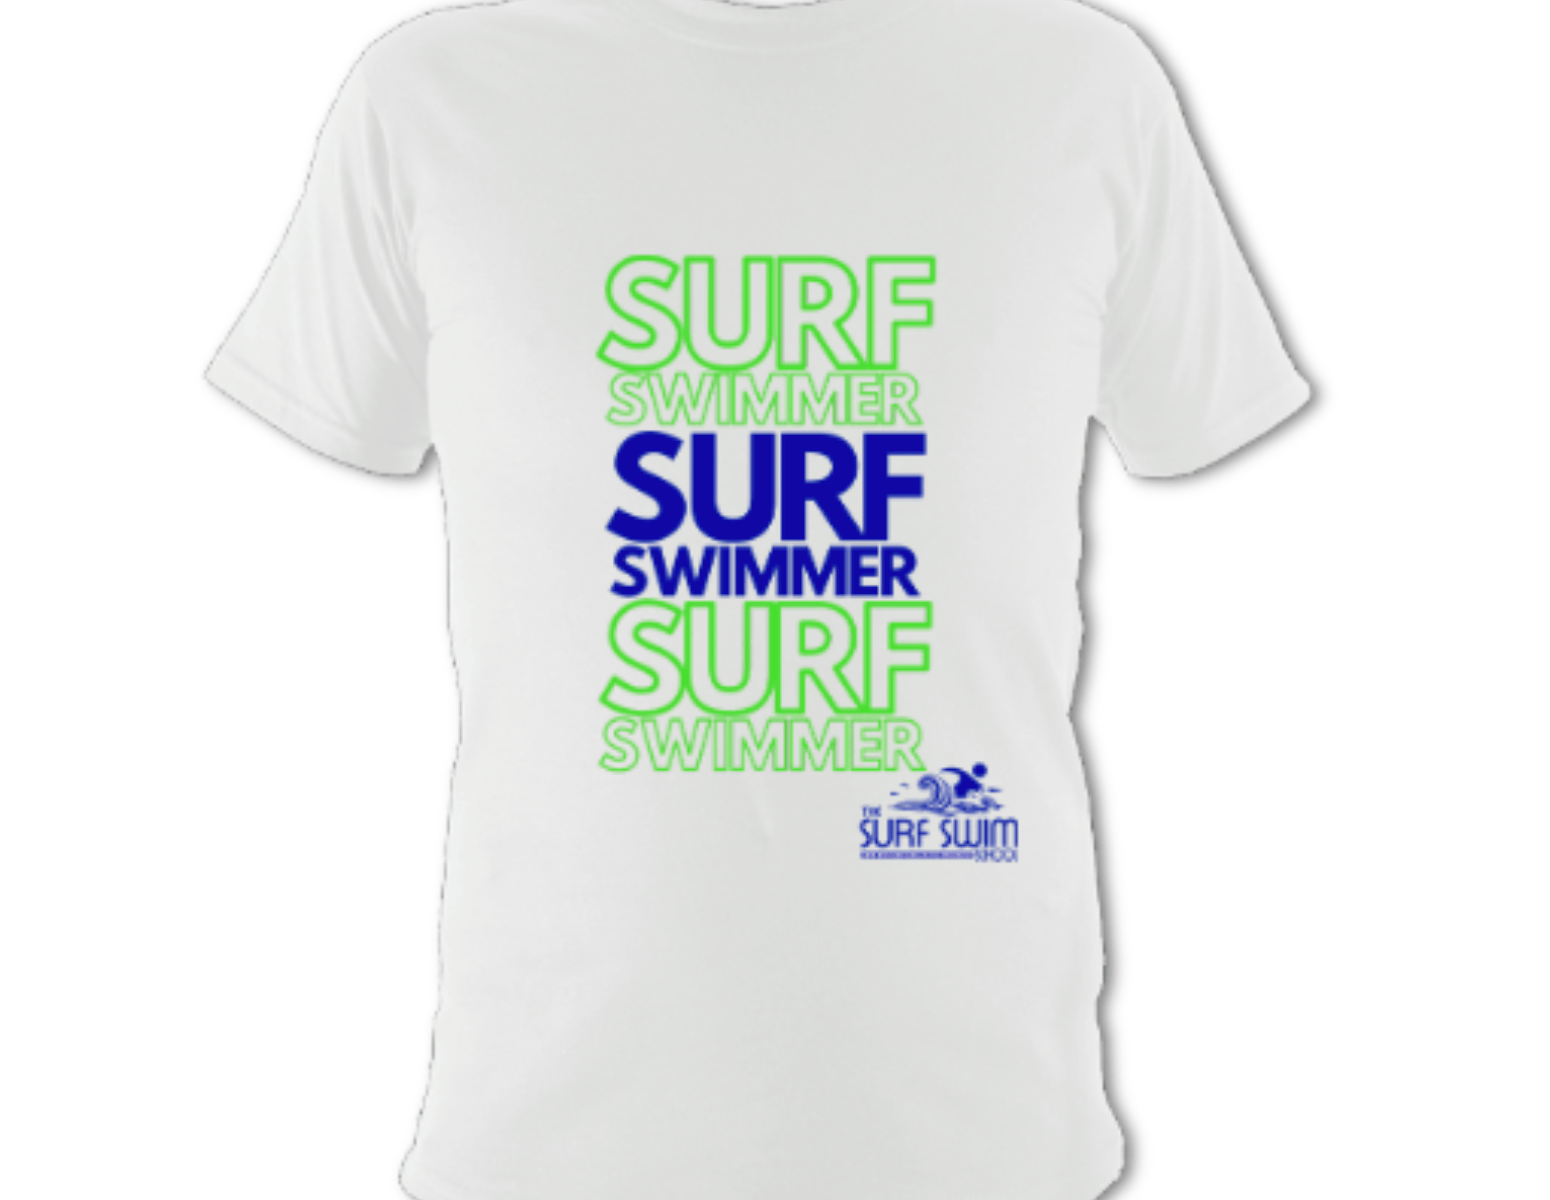 Surf Swimmer T-shirt